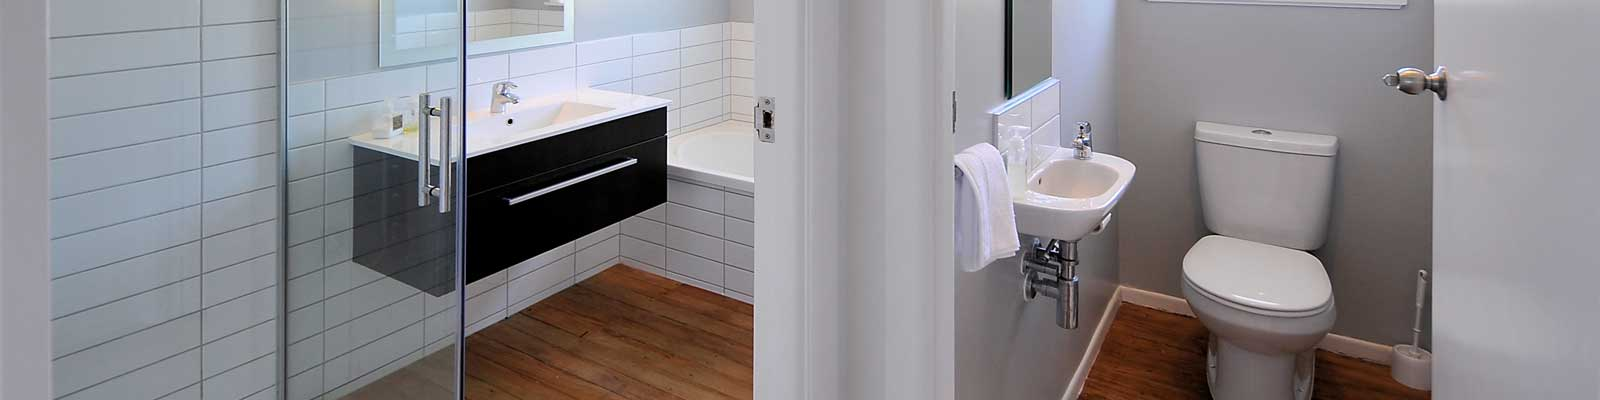 Bathroom Renovation Experts In Toronto And Greater Toronto Area